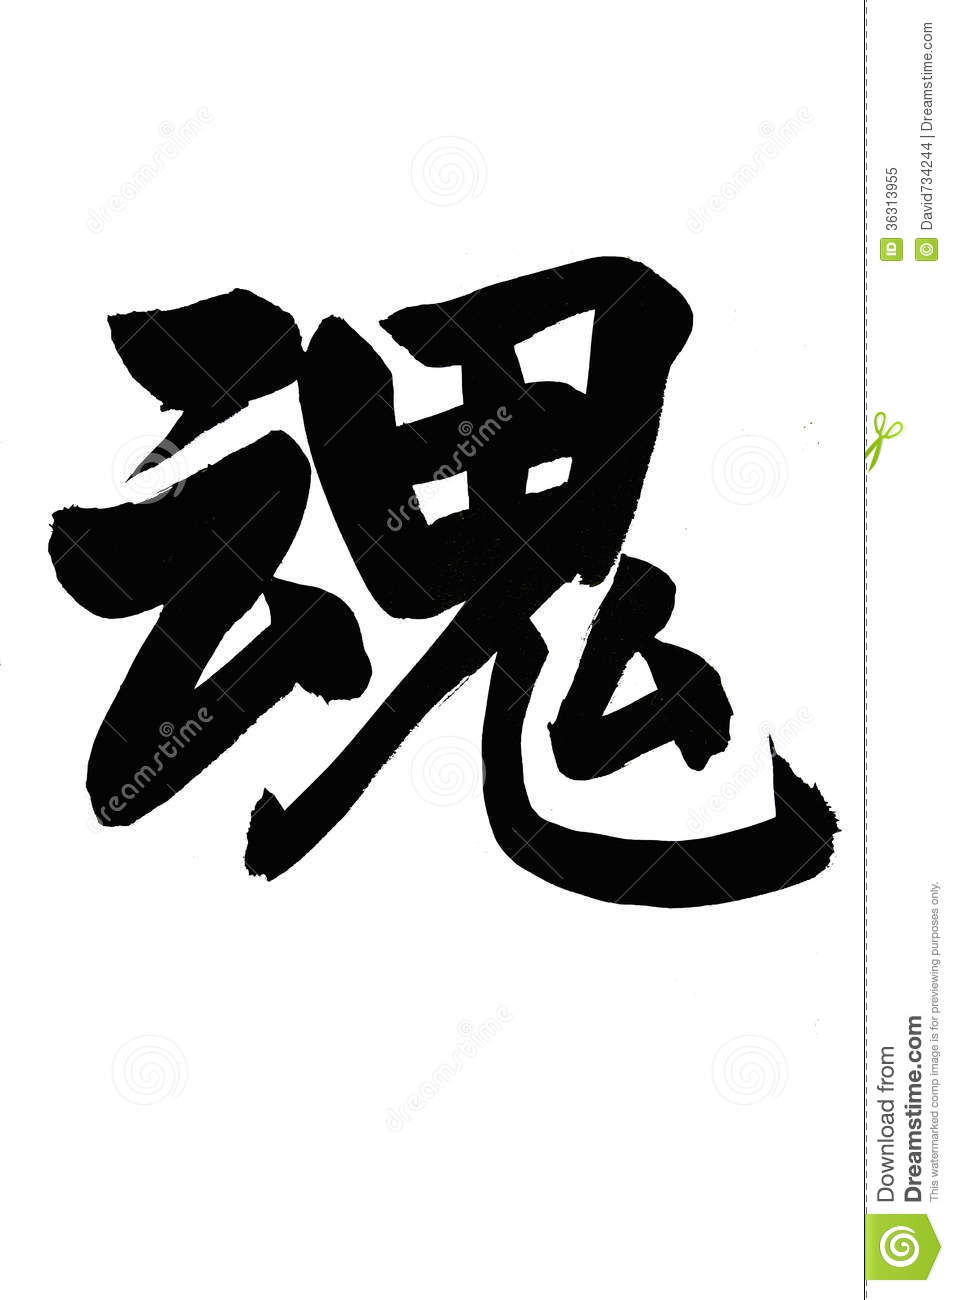 Chinese calligraphy royalty free stock photo image